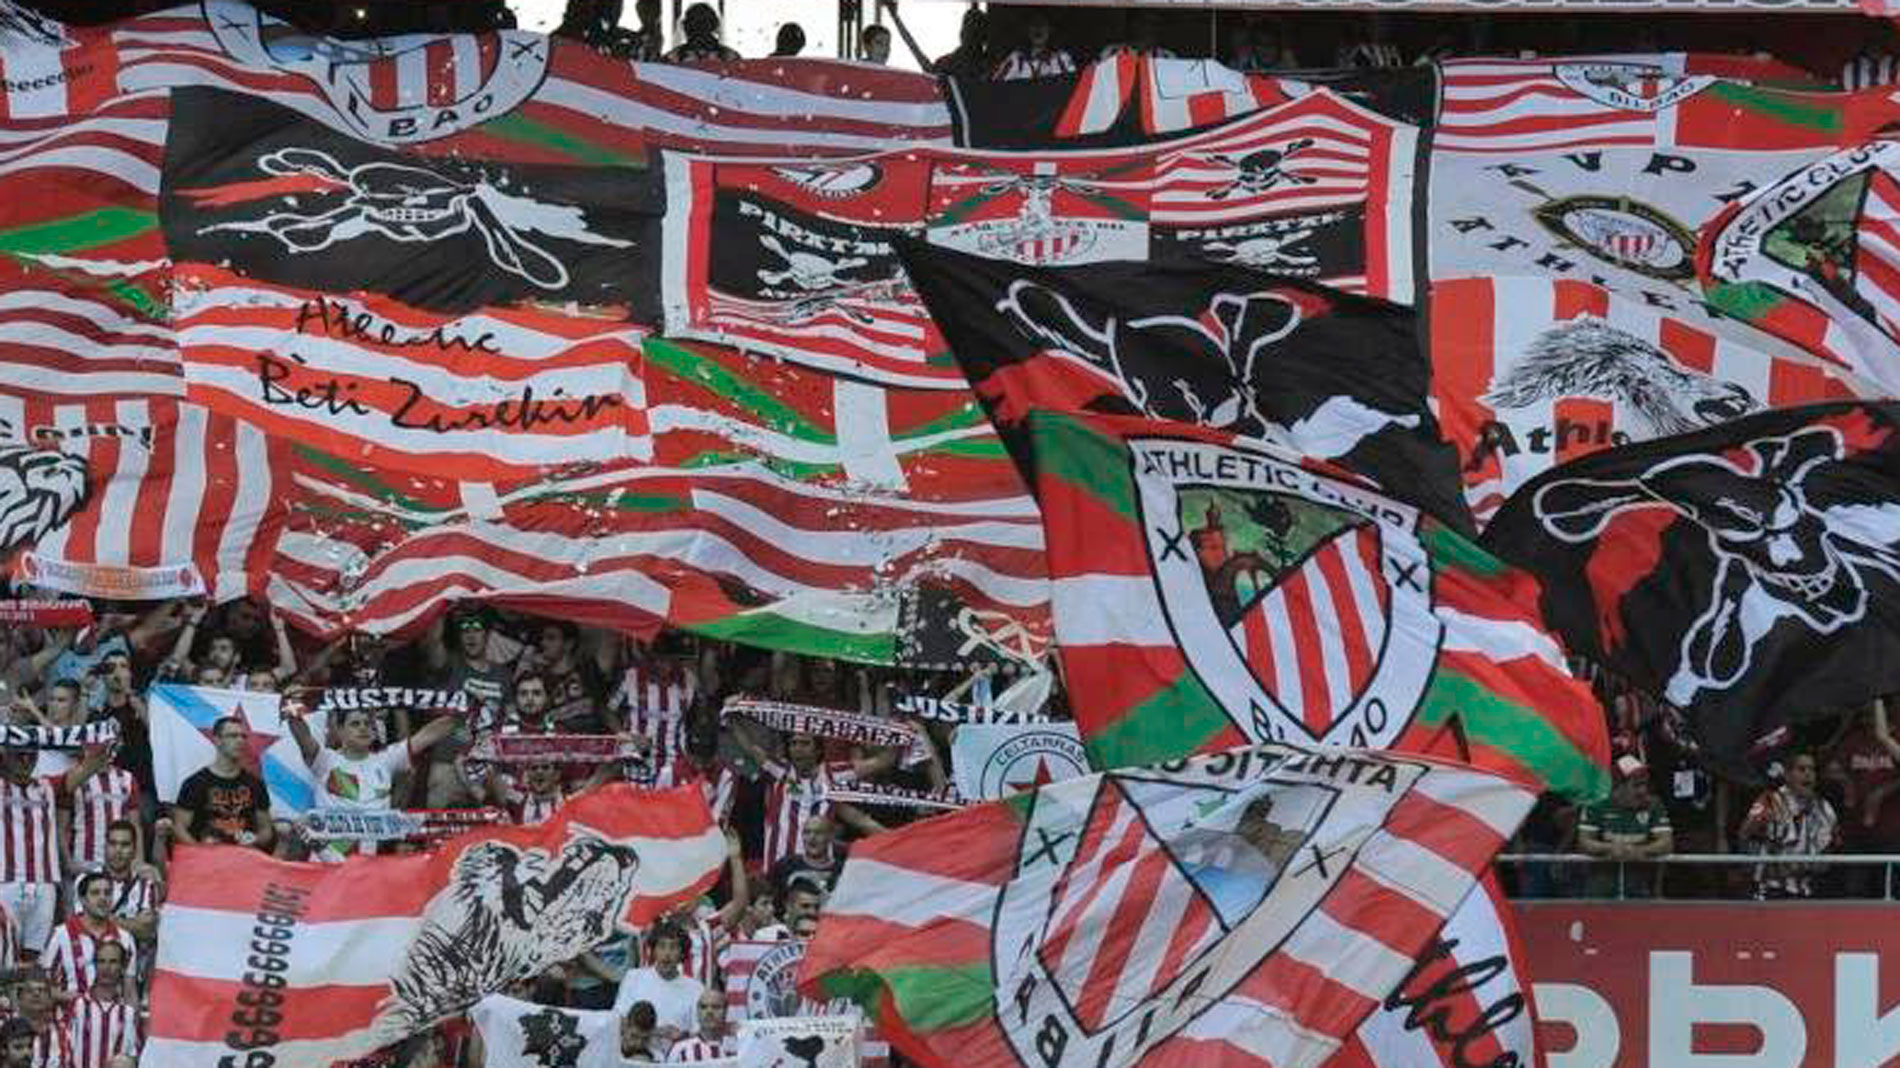 Herri Norte, el grupo ultra del Athletic